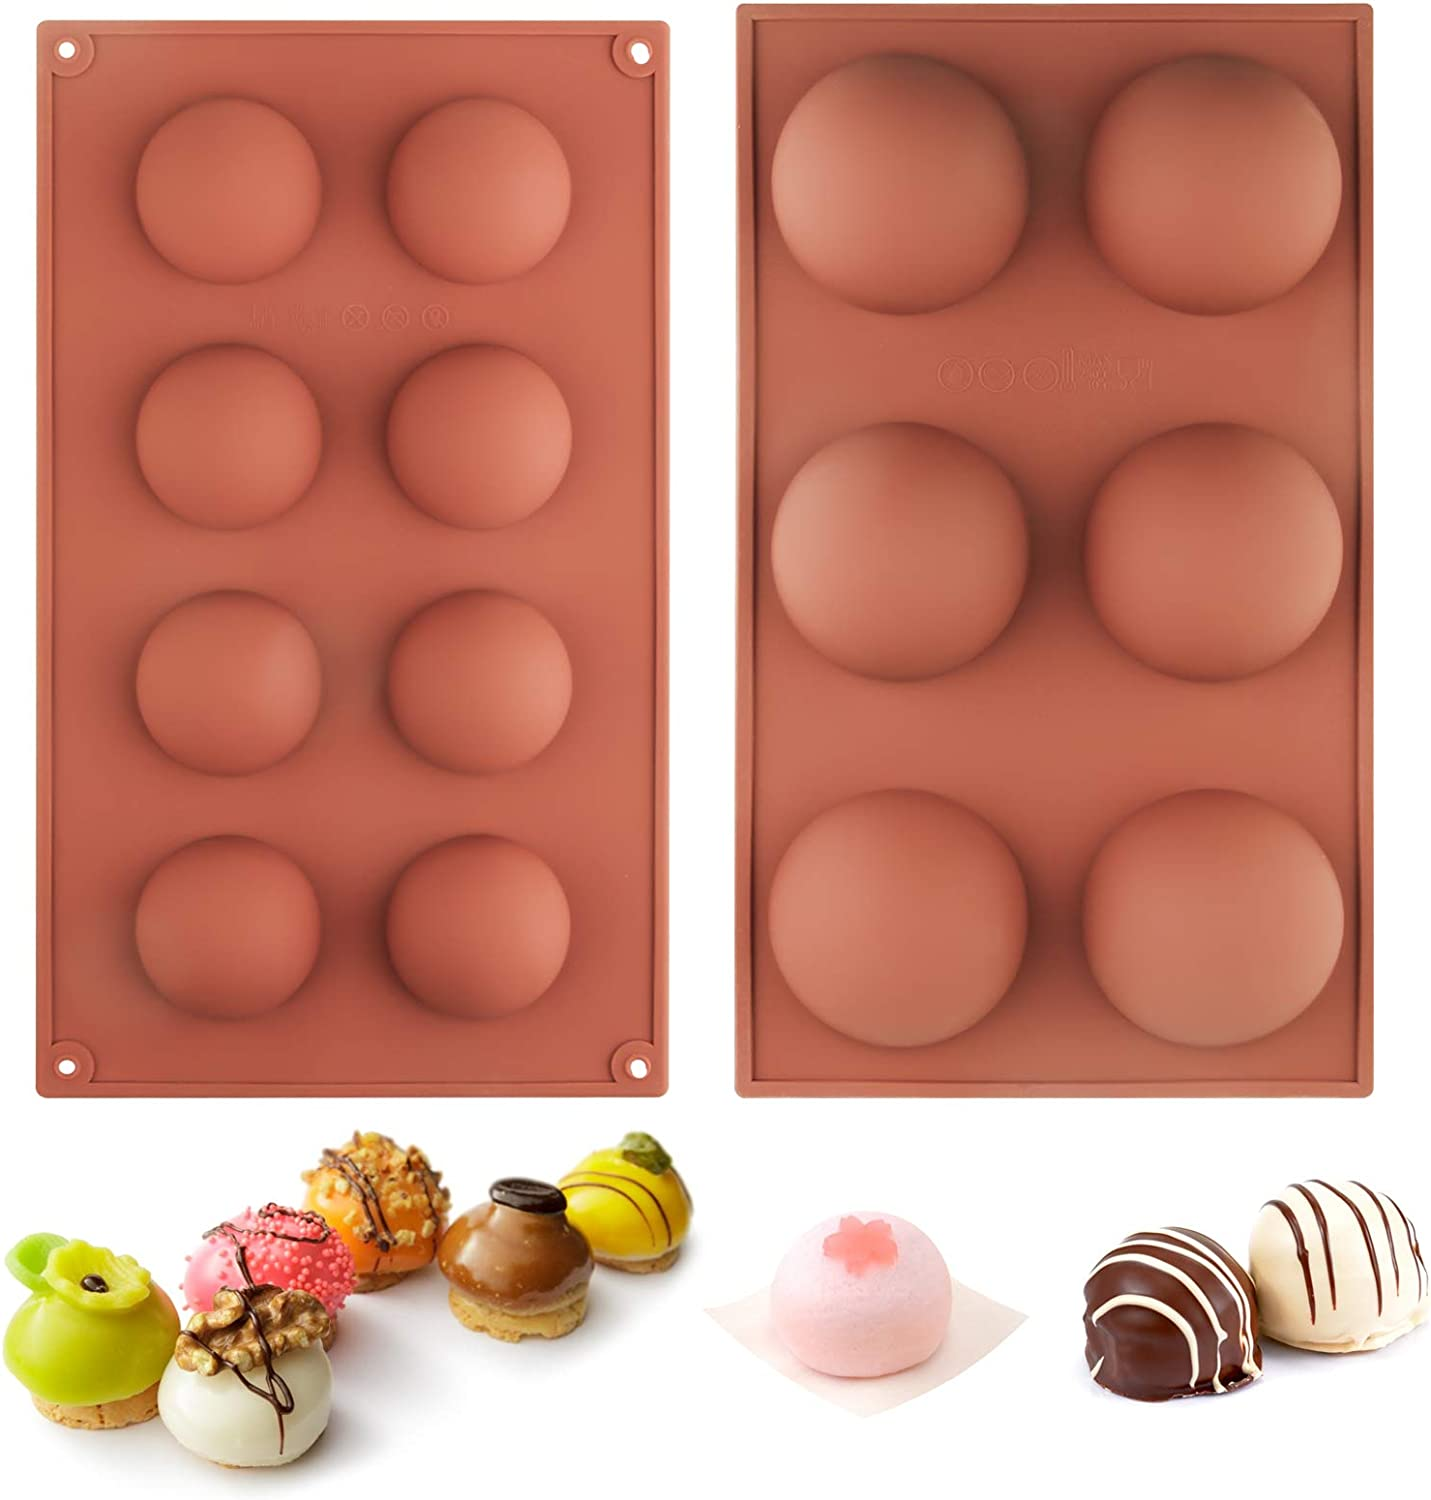 6 Holes Half And 8 Holes Half Ball Sphere Silicone Circle Pastry & Baking Tray Mold For DIY Baking,Cupcake,Chocolate, Jelly, Pudding, Handmade Soap,Mousse, Bakeware Kitchen Tools (2 Pc Brown)